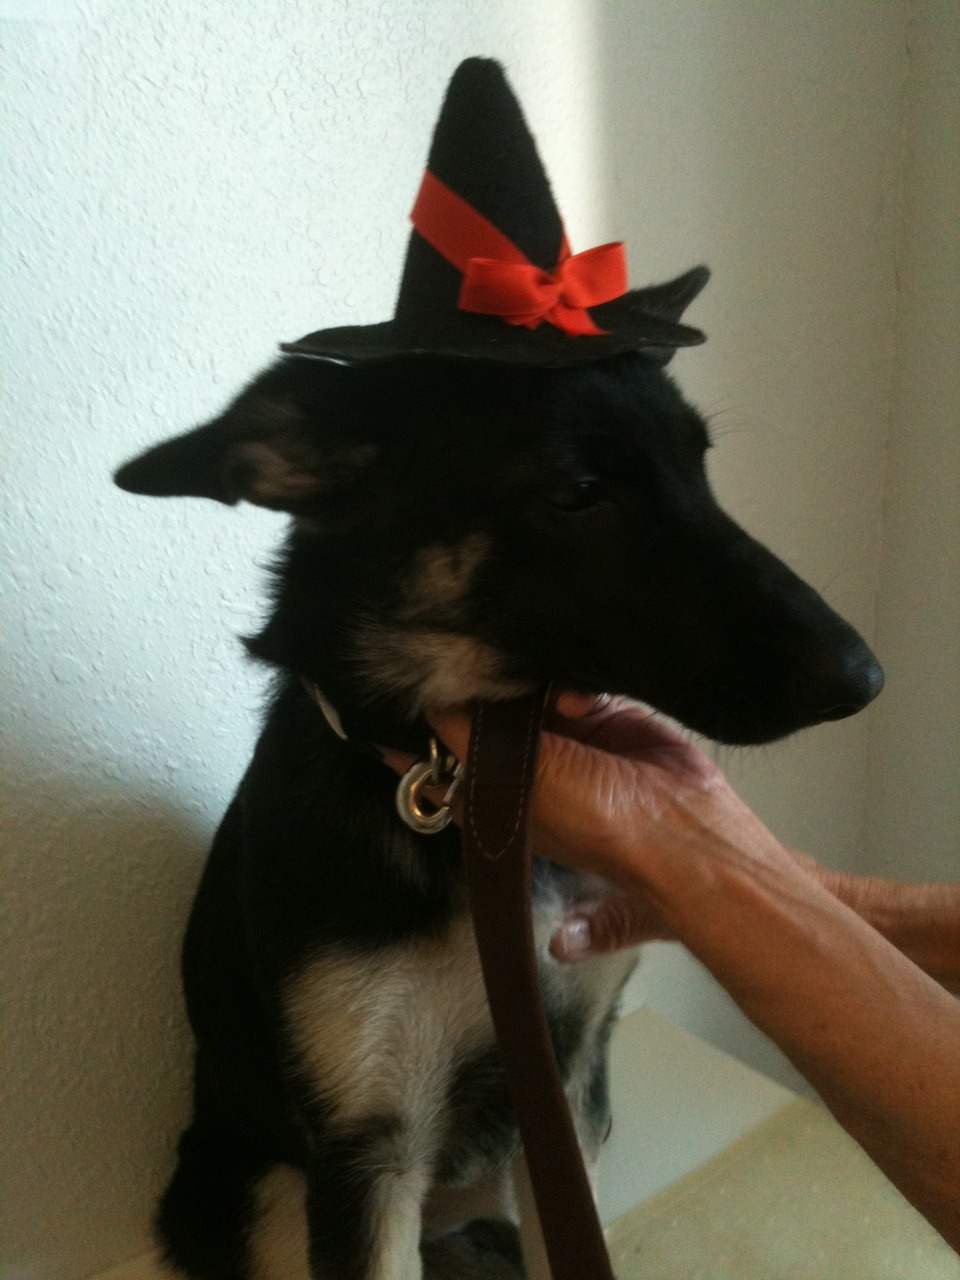 "To mark the time of year when people start putting funny costumes on their pets, I present ""Shorty in a hat."" Quite understated I think. Email us your photos of your pet's Halloween costume to info@dirty-dog.com and we'll share them with the world. There might just be something in it for the cutest one! Be sure to include your pet's info (name, breed, age, etc)."